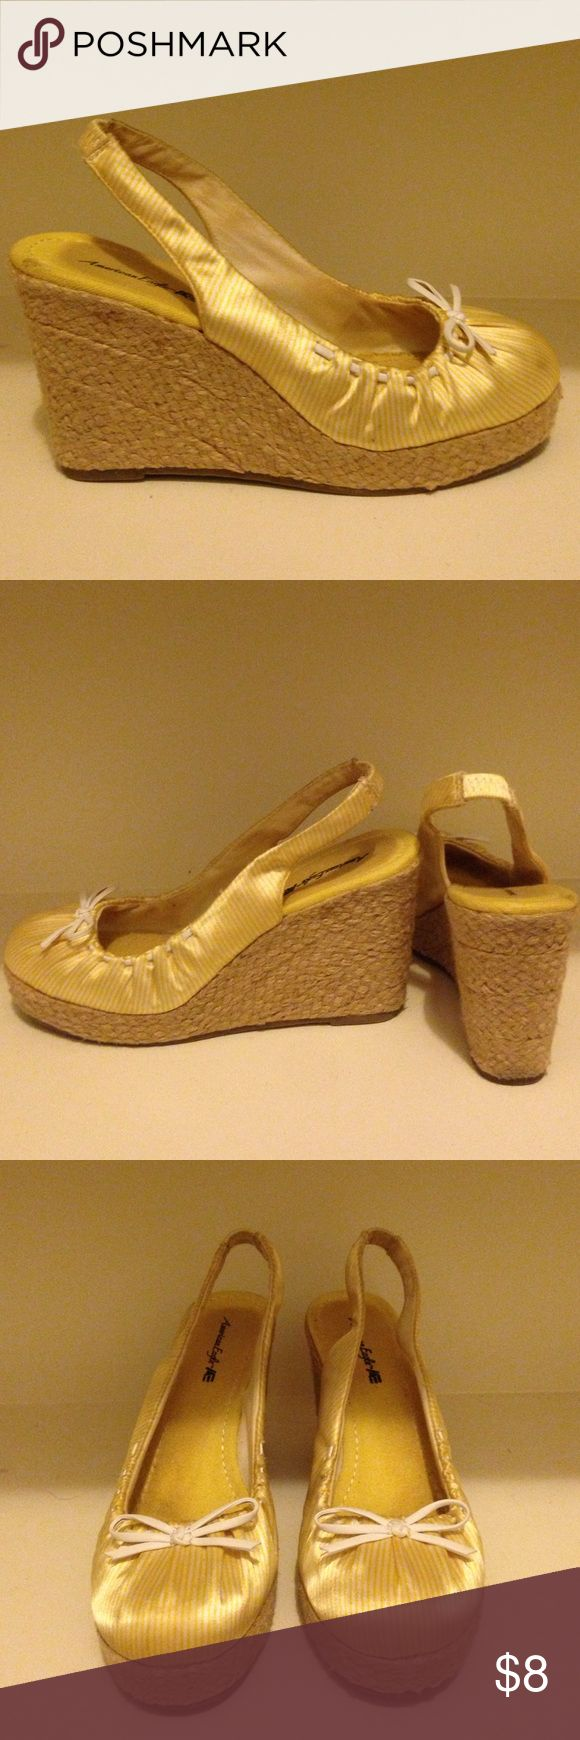 Yellow espadrilles (wedges) 💛 These are size 6 espadrilles in good condition. I love them, just don't have anything that matches them. They have only been worn a few times! American Eagle by Payless Shoes Espadrilles